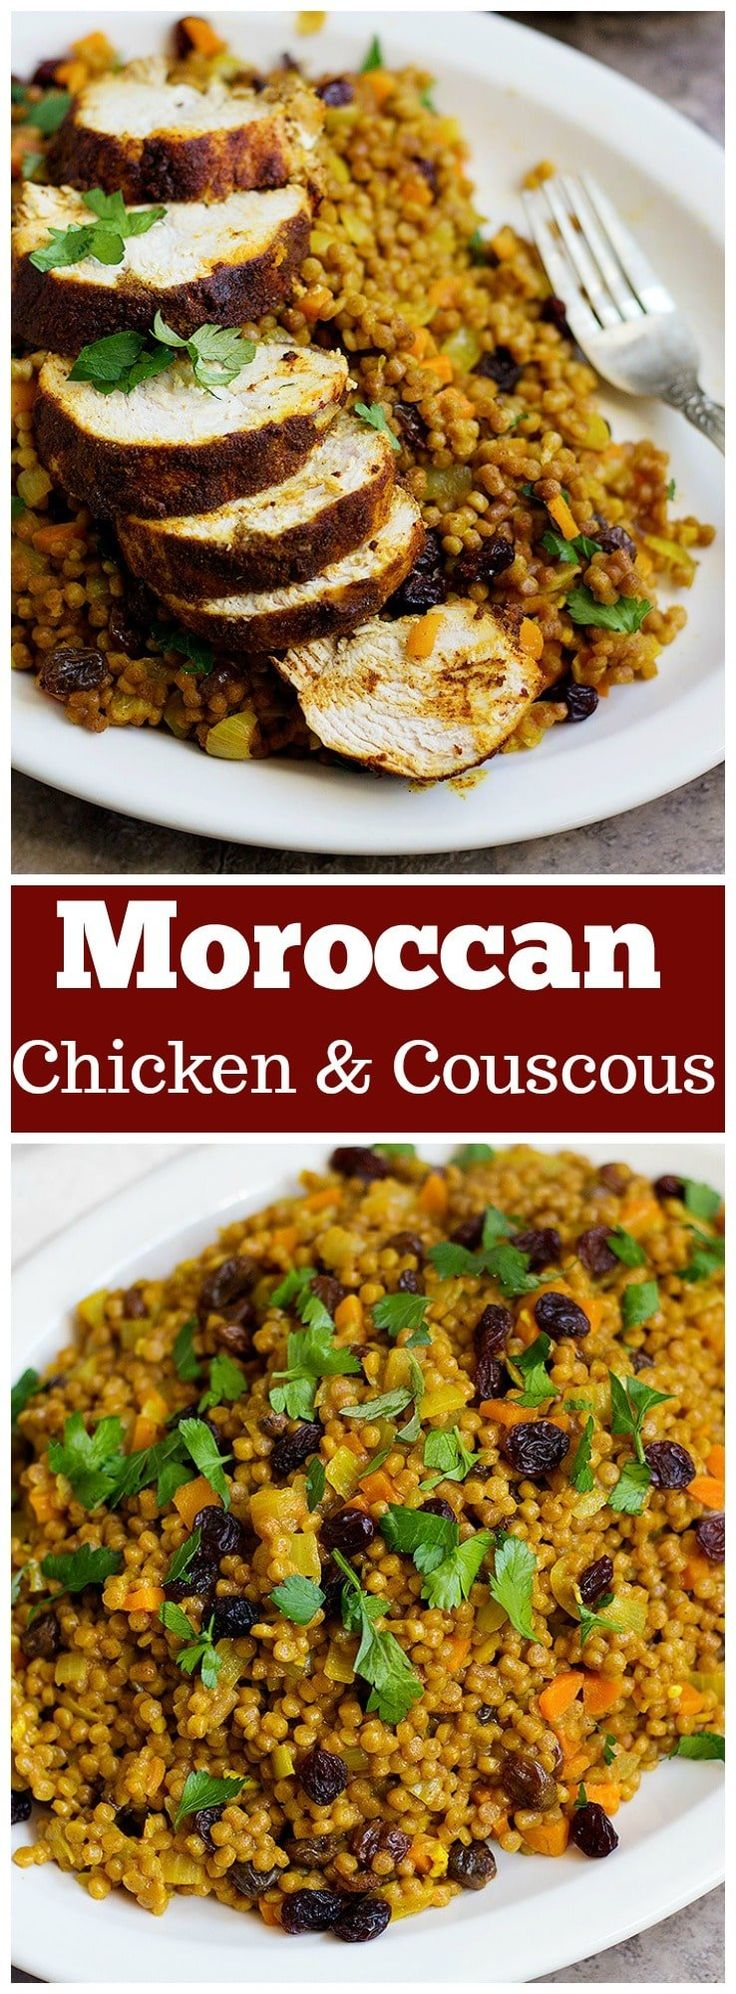 Enjoy a festival of flavors with this Moroccan chicken recipe. Chicken breast ma…